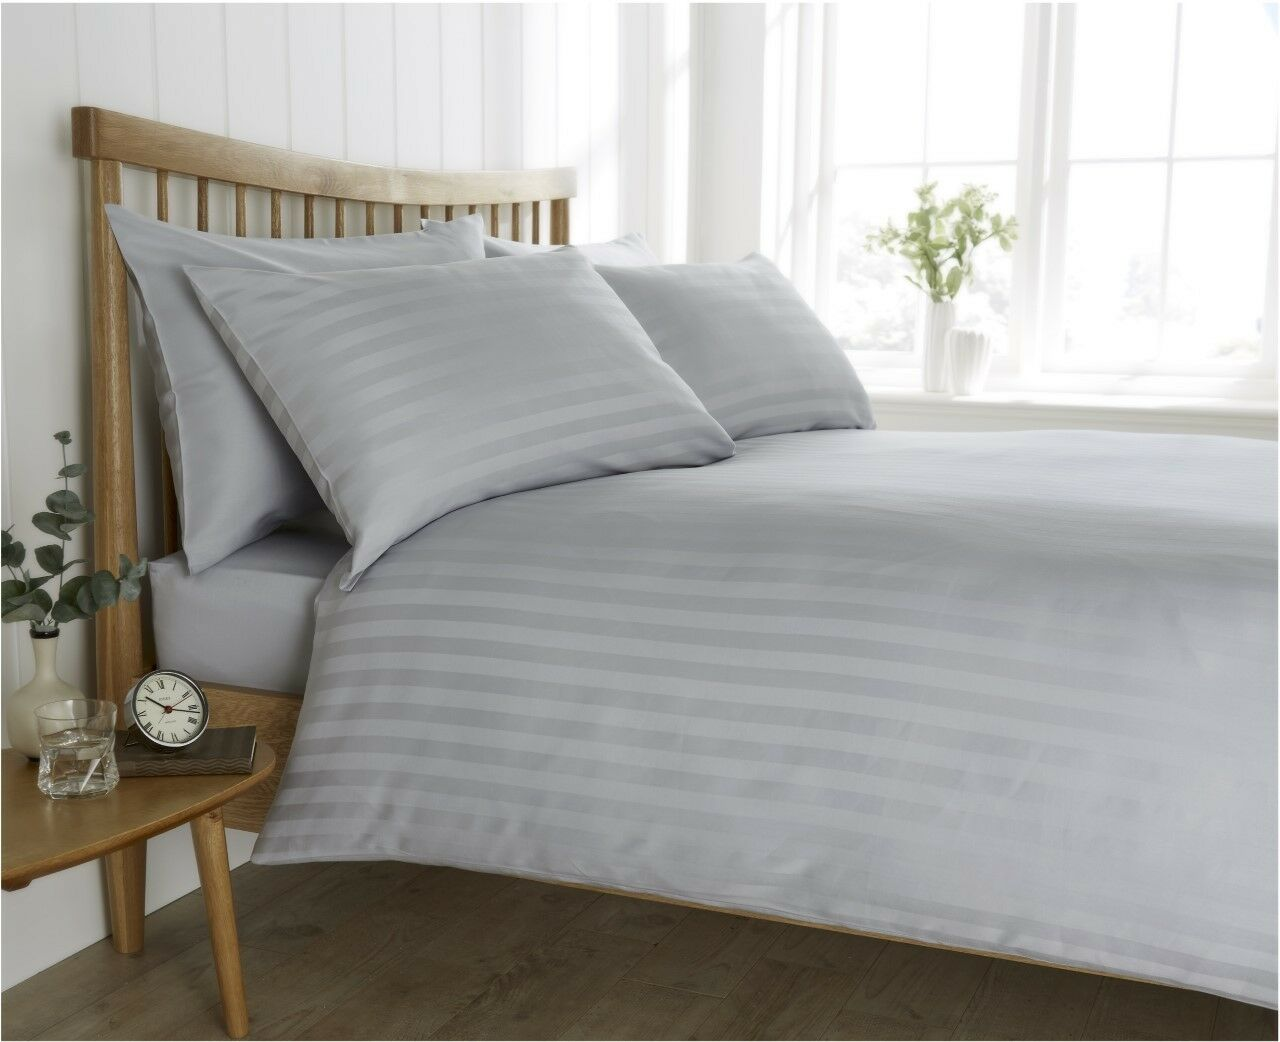 grau Satin Stripe Duvet Cover Set, Fitted Sheet & Pillowcases - Complete Bed Set